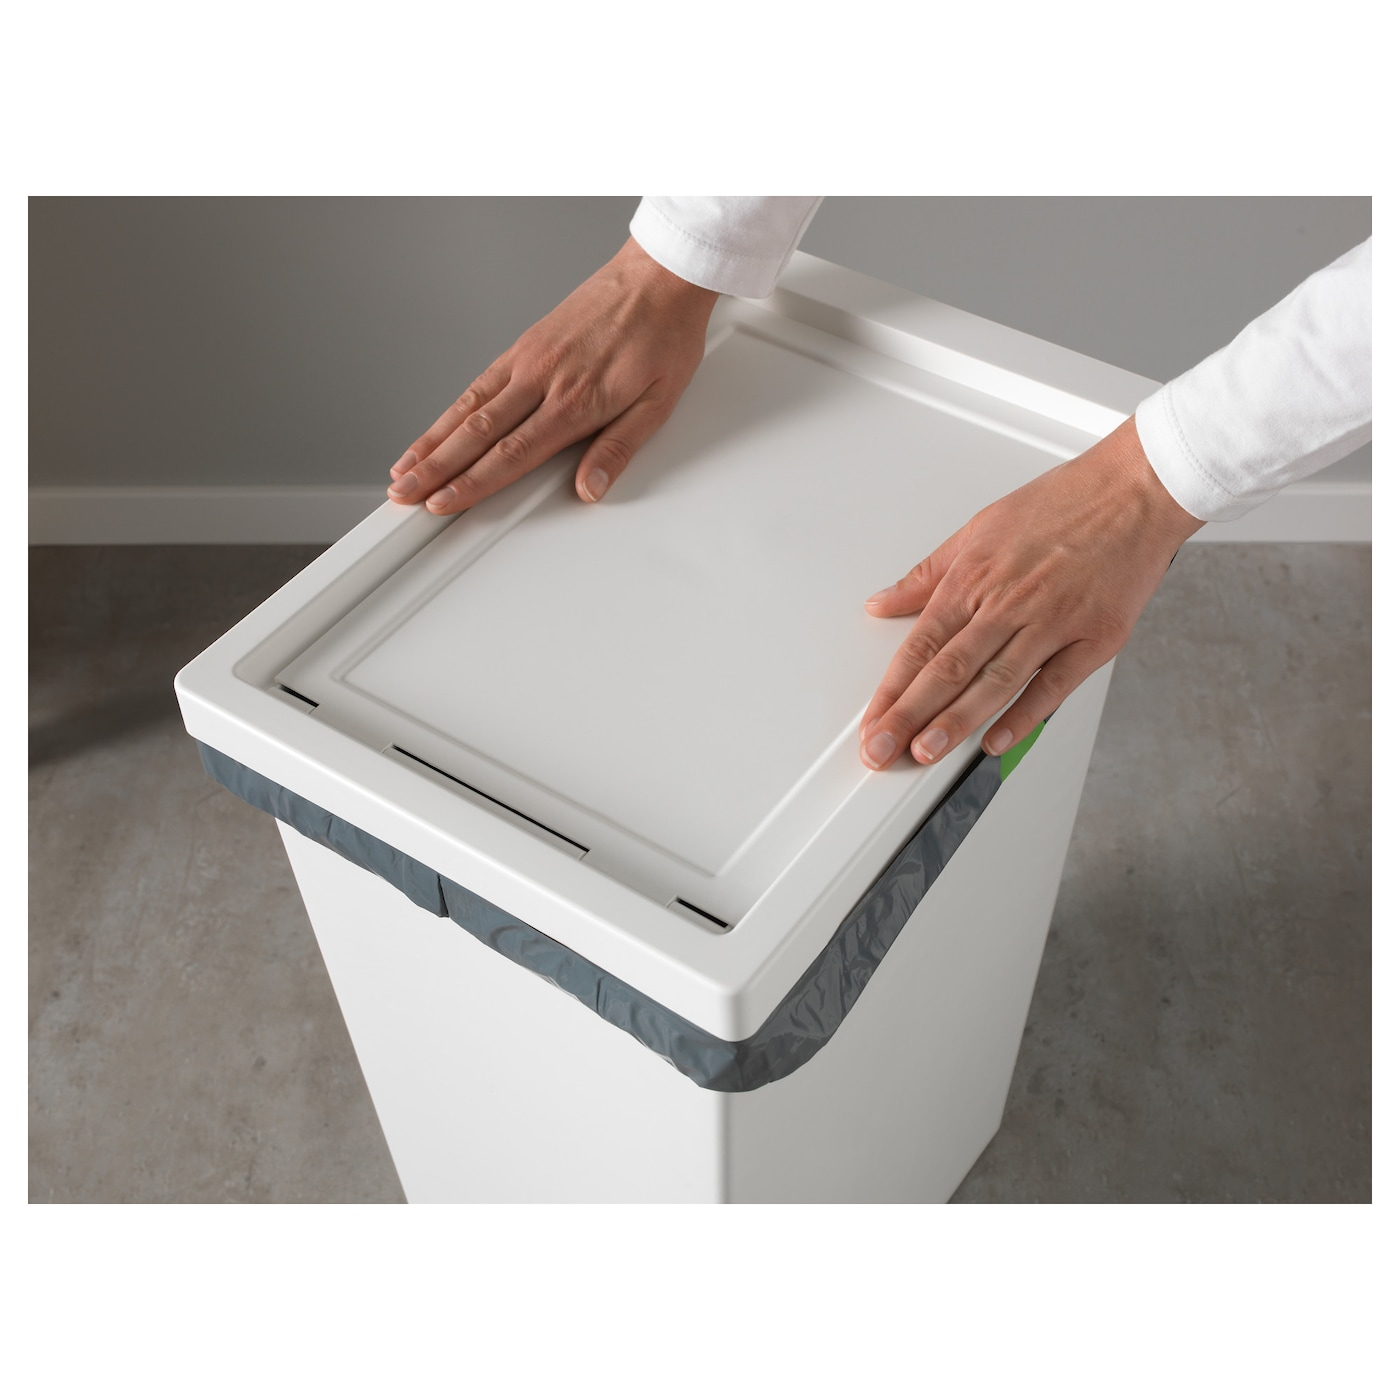 IKEA FILUR bin with lid Easy to clean as the corners are rounded.